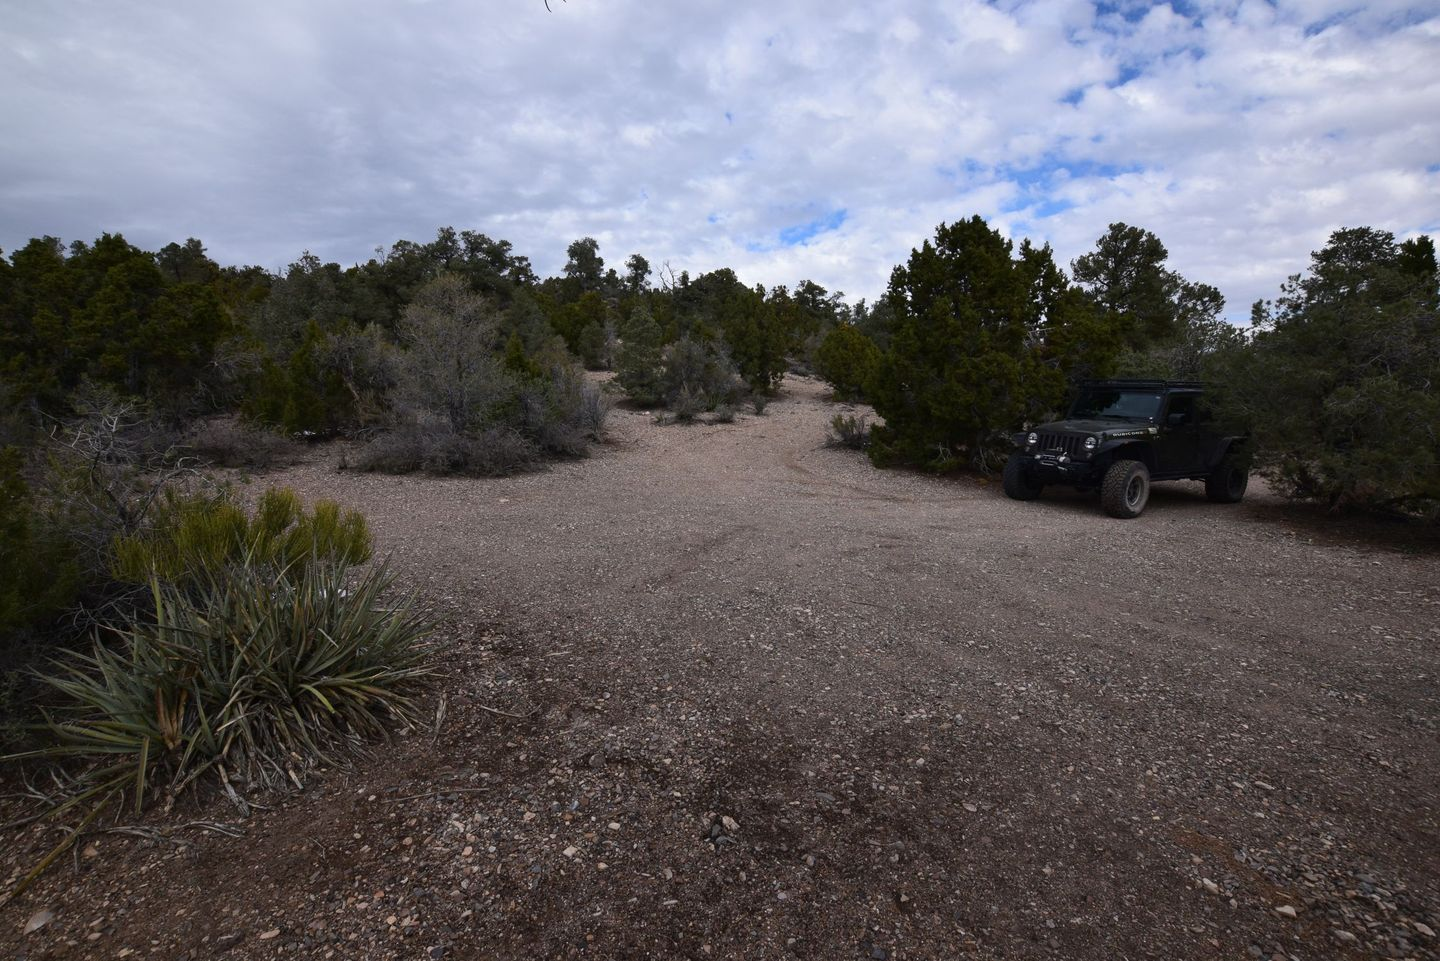 Pine Nut Road - Waypoint 8: Campground / Endpoint